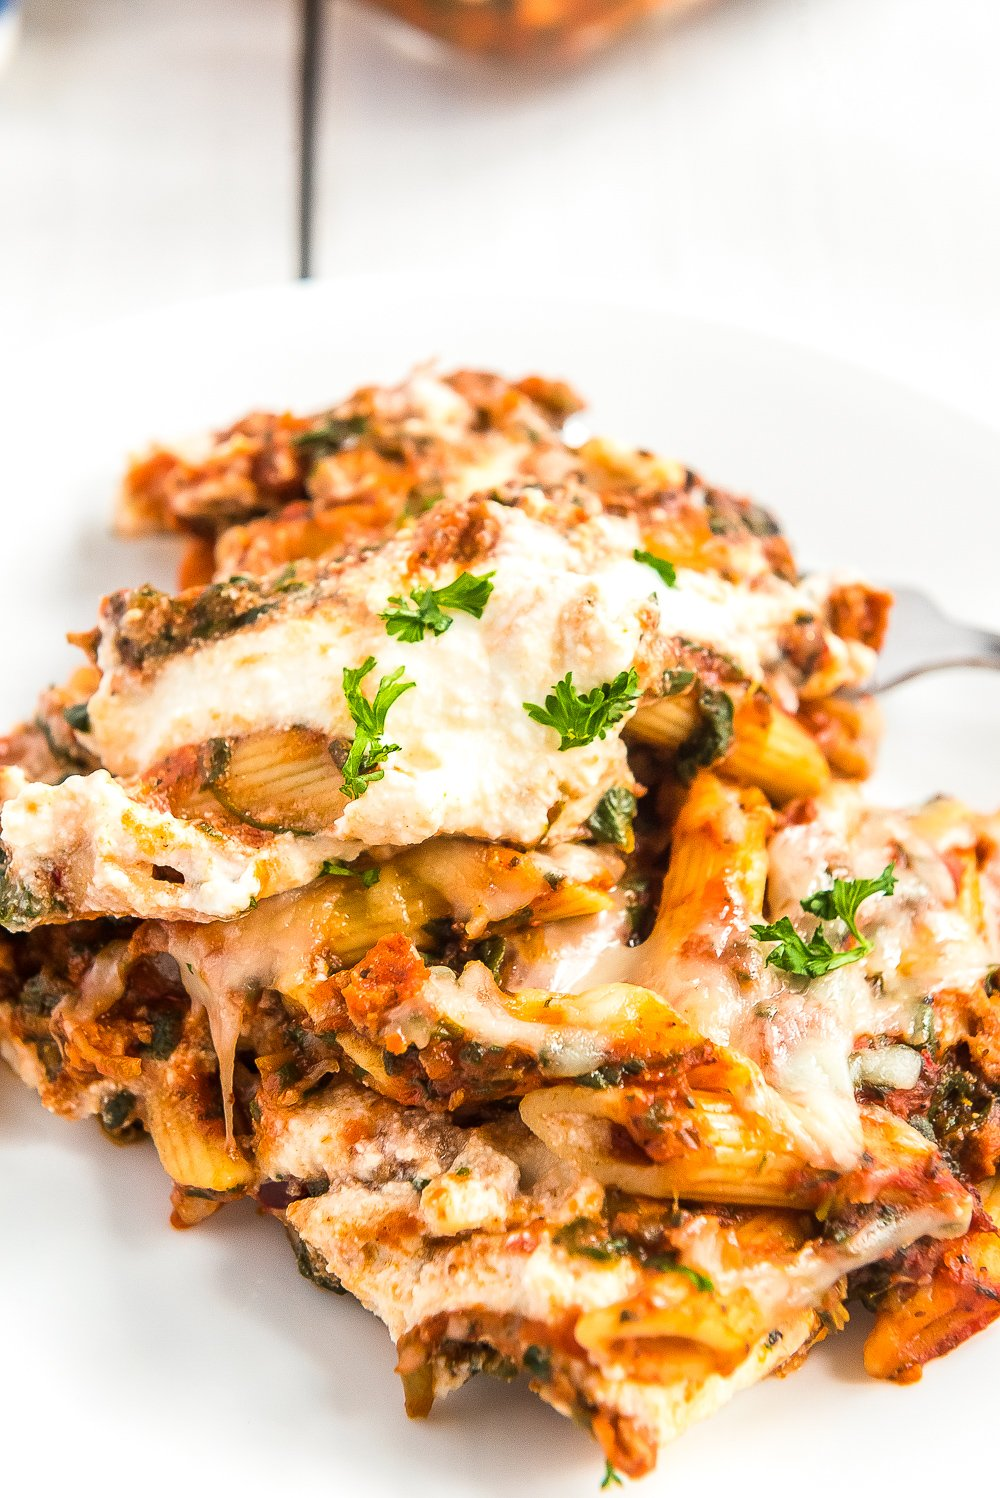 Turkey Florentine pasta bake served on a white plate.